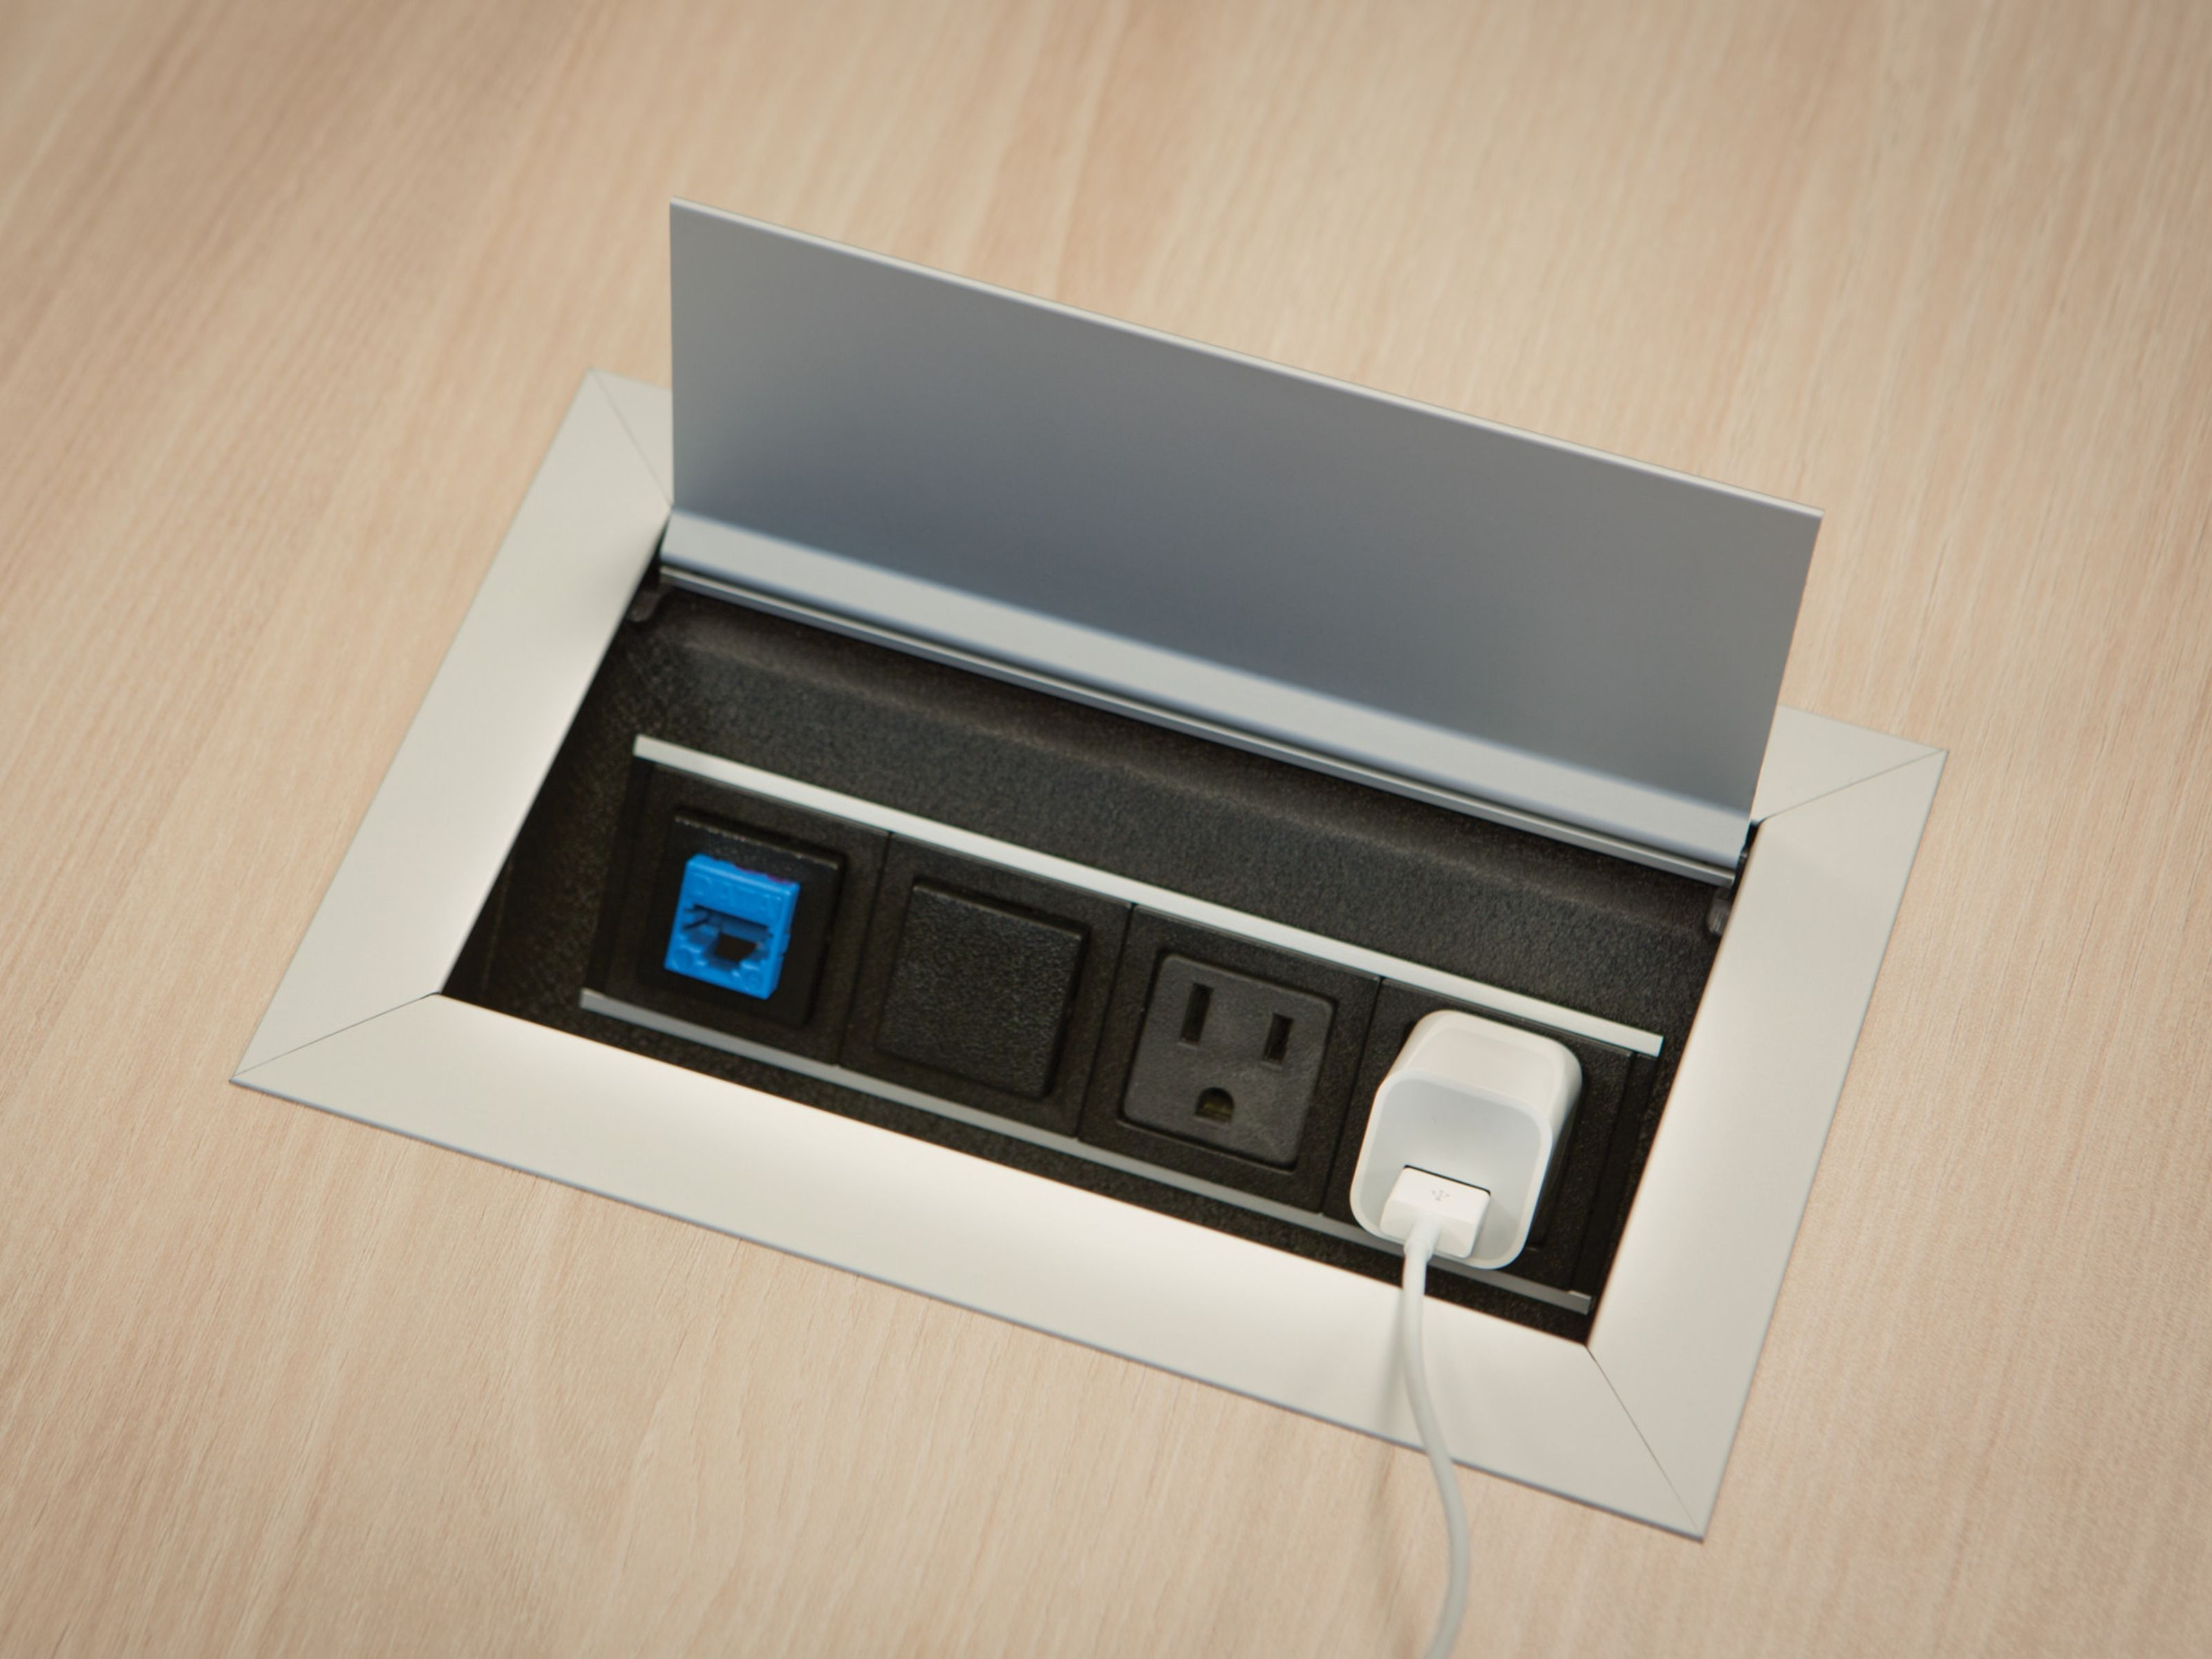 Payback Steelcase Pinterest Resource Furniture - Conference room table electrical outlets